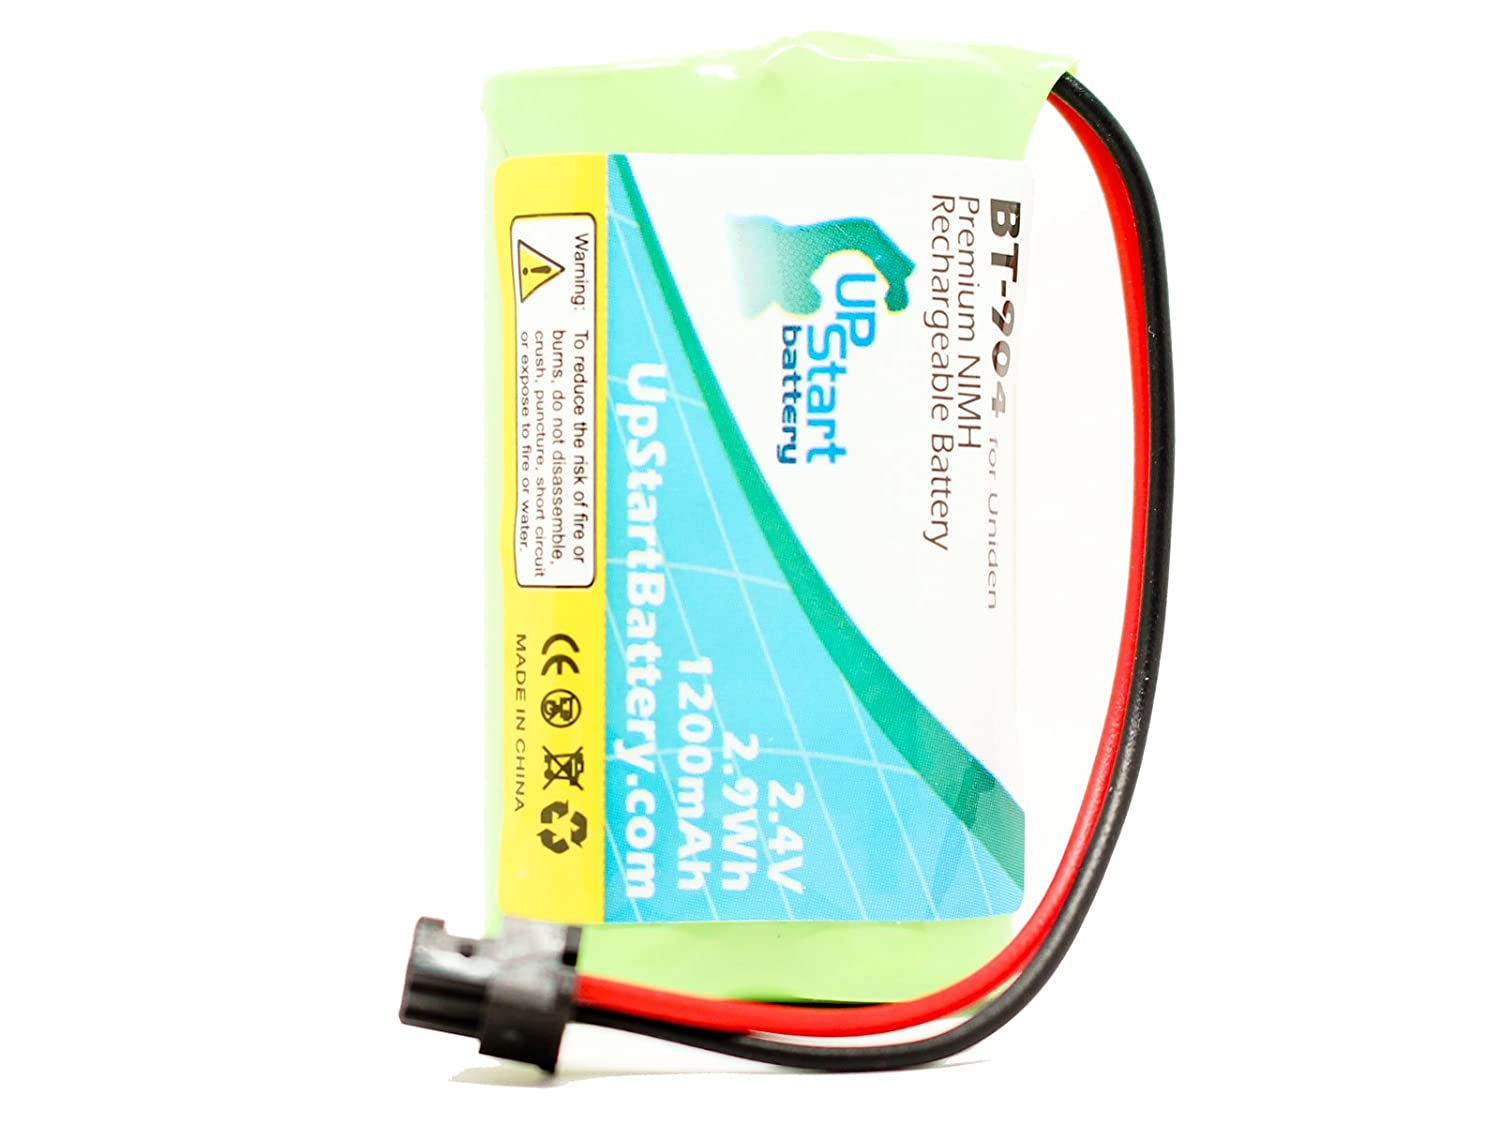 3x Pack Uniden Dect1588 5 Battery Replacement For Headphone Wiring Diagram Cordless Phone 1200mah 24v Ni Mh Electronics